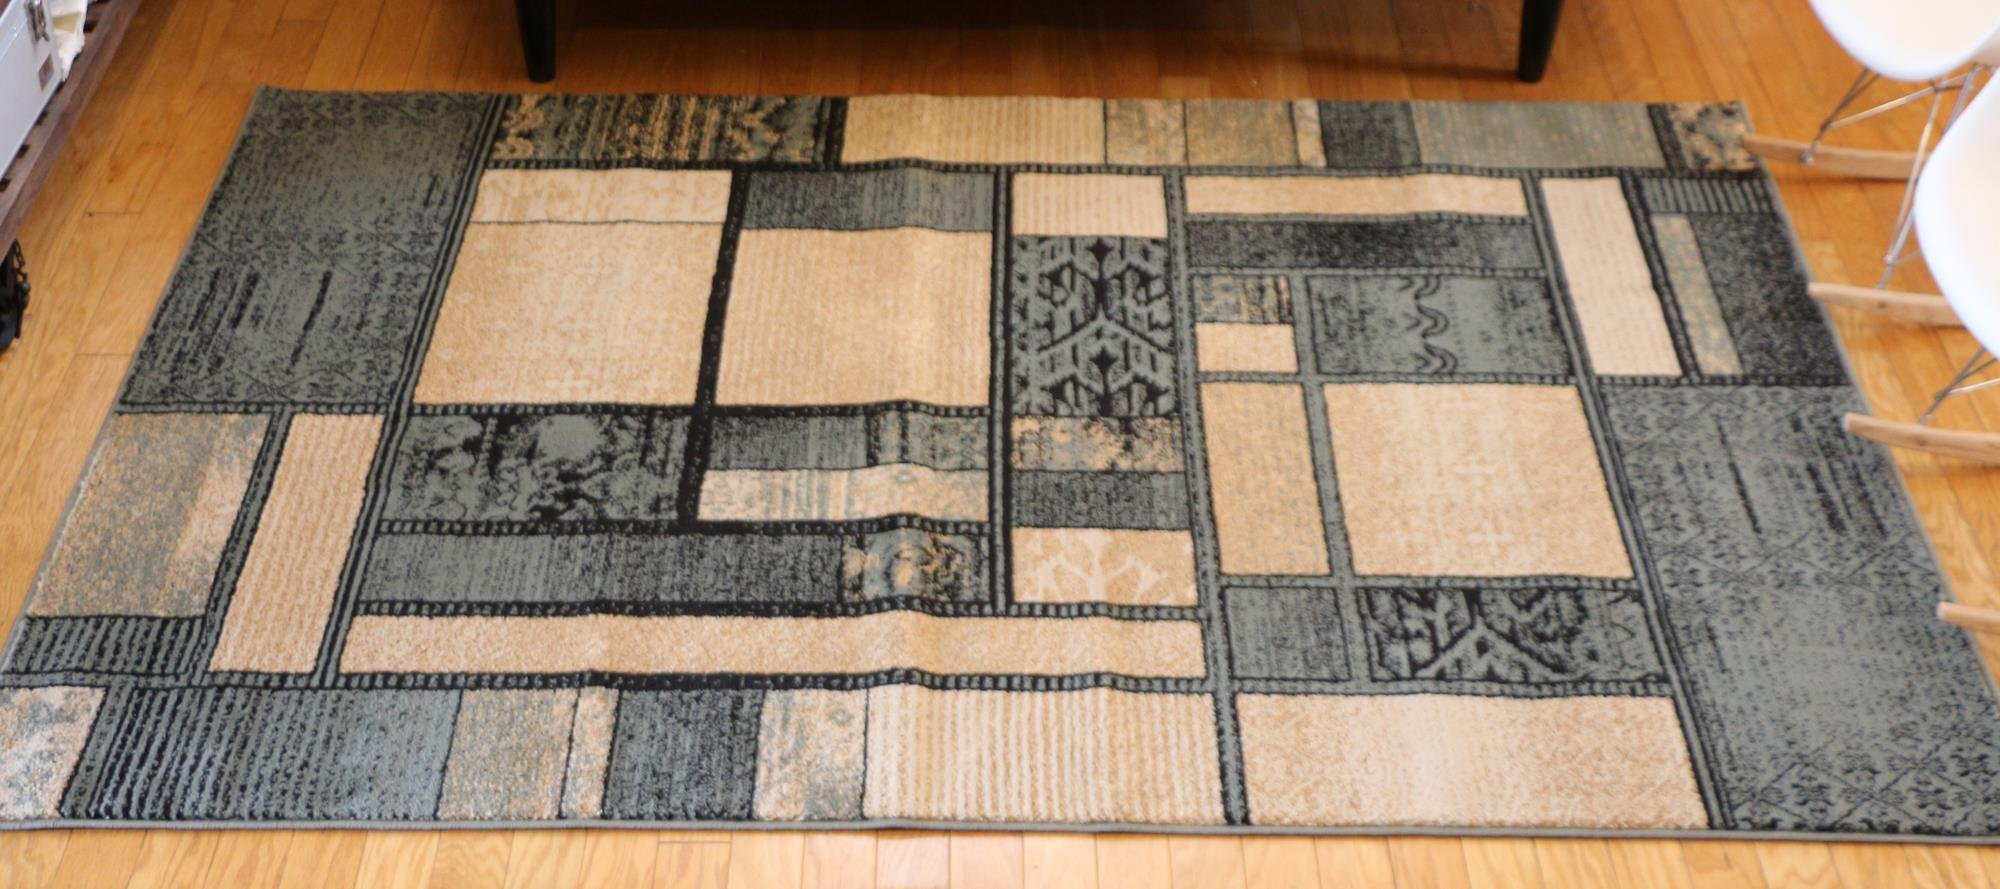 Feraghan/New City Contemporary Modern Square Boxes Area Rug, 2' x 3', Blue and Beige